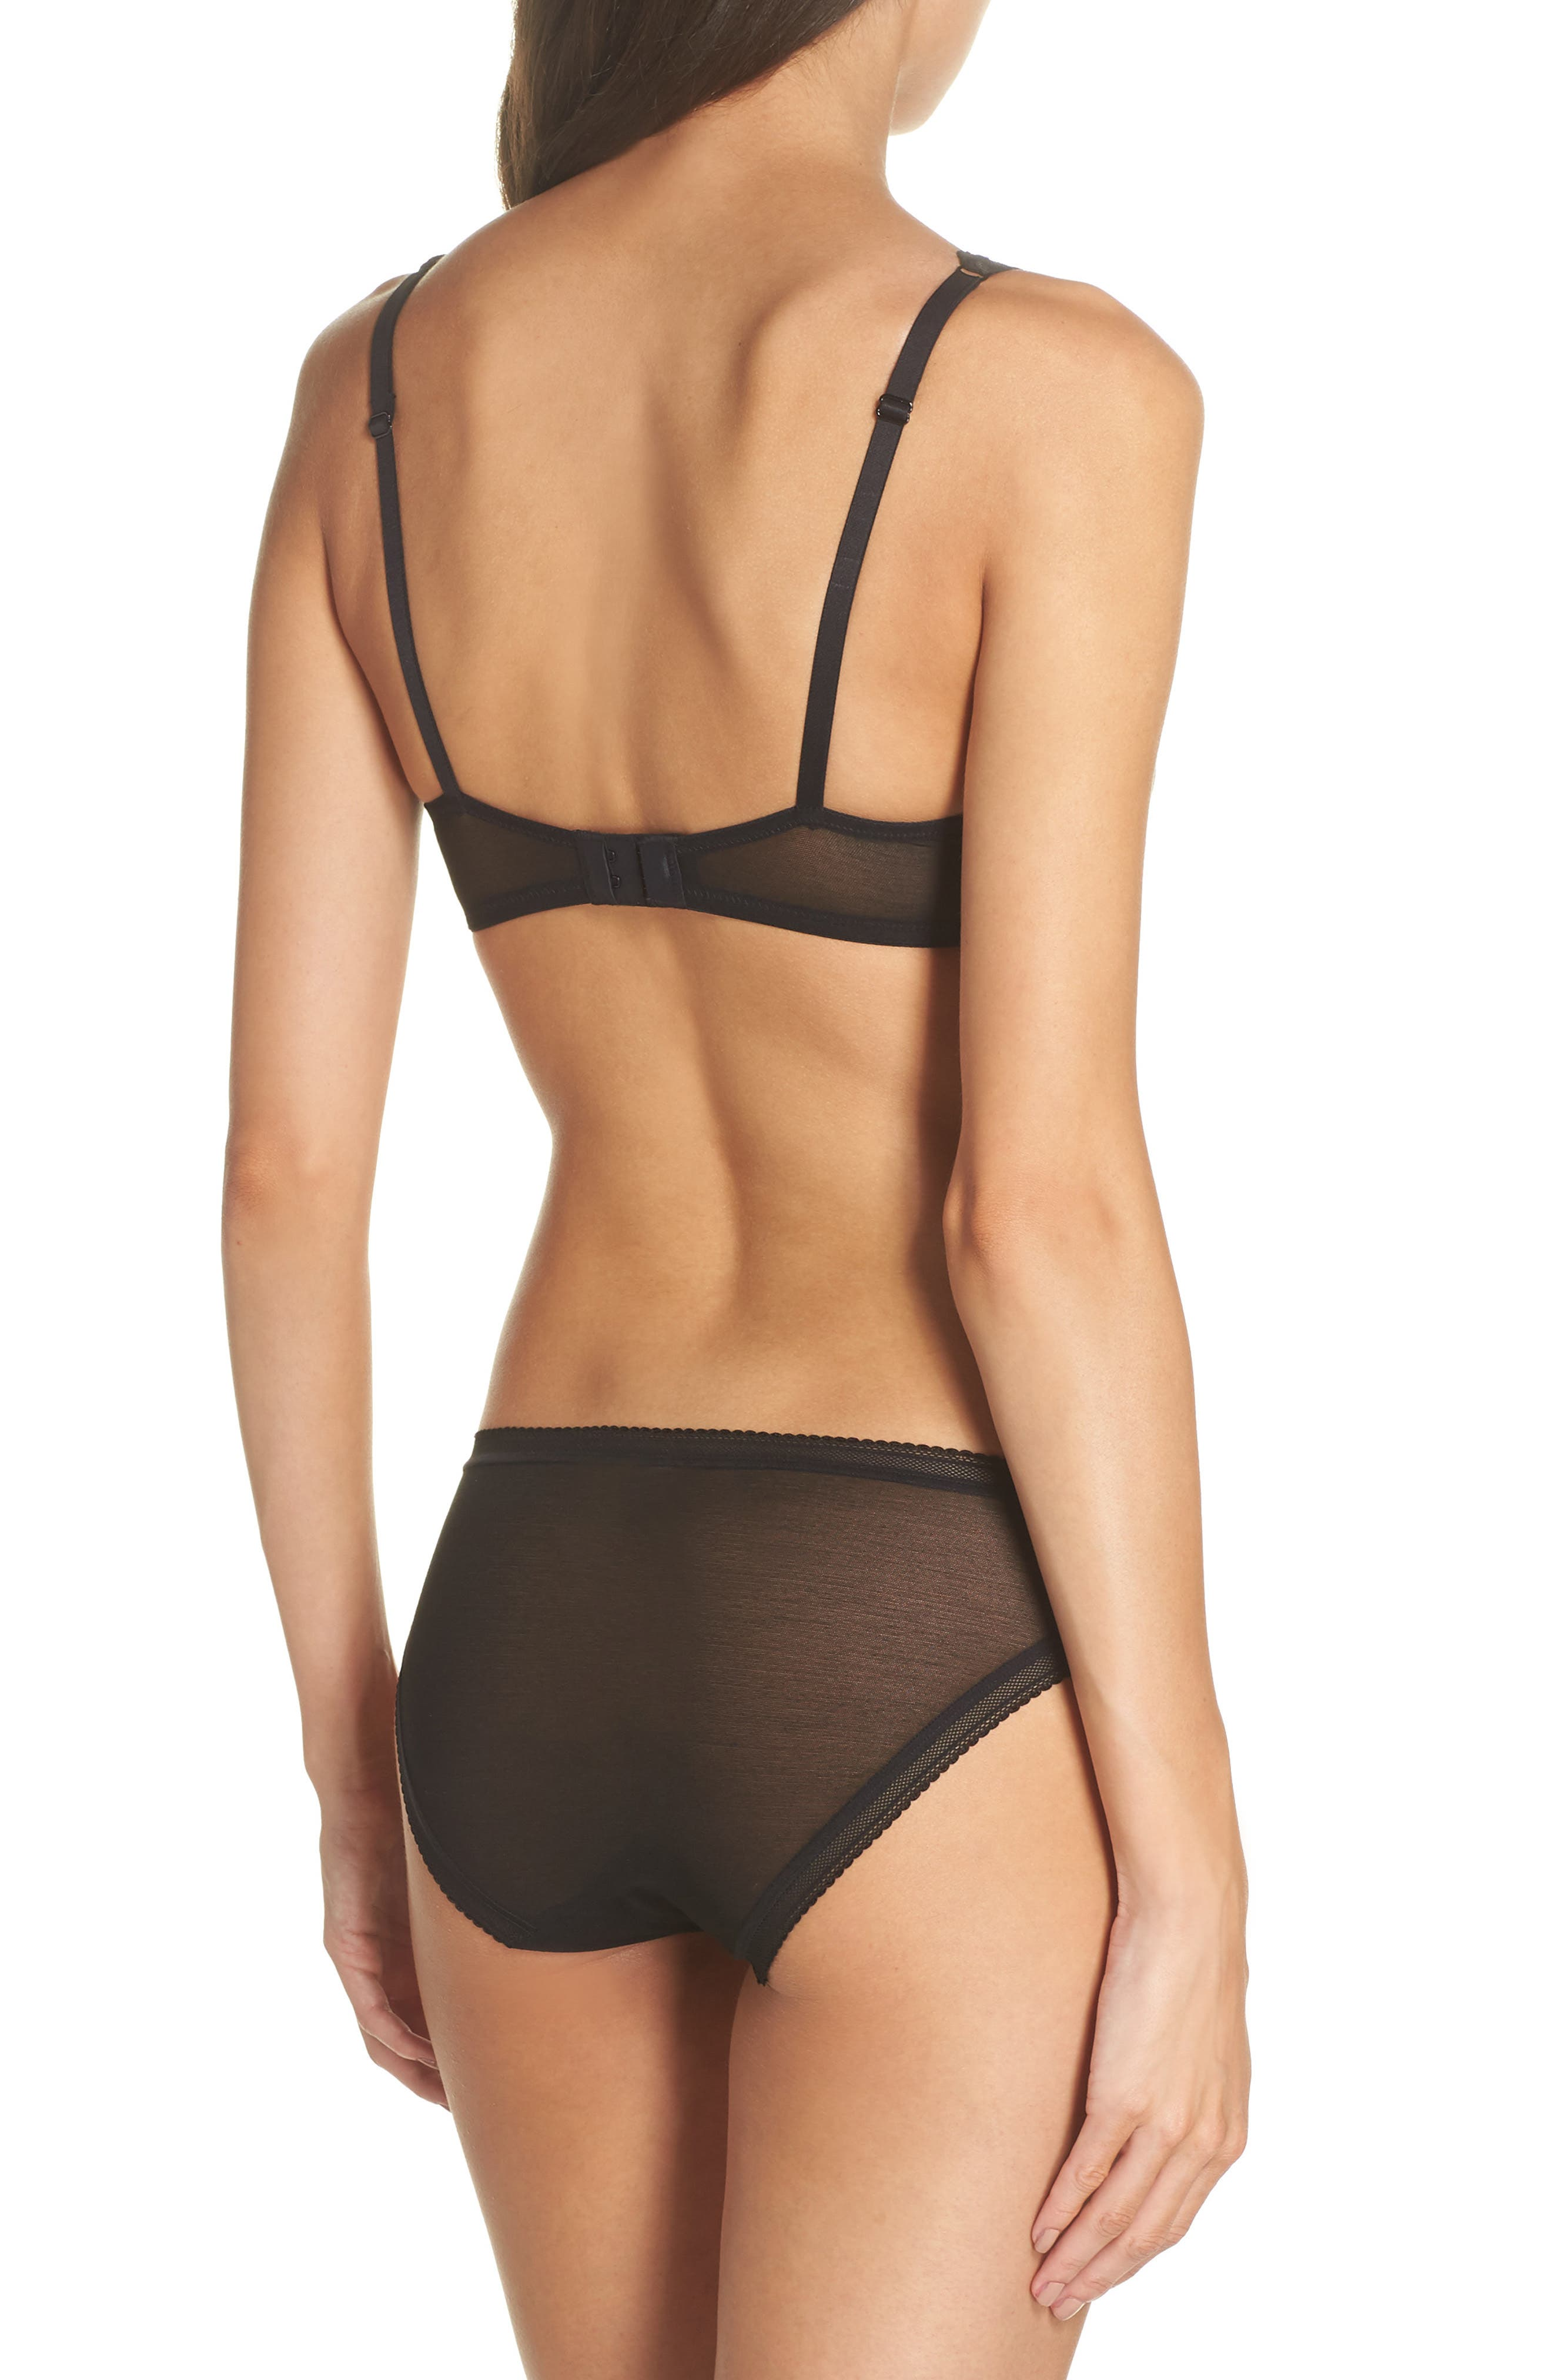 Mesh Bikini,                             Alternate thumbnail 5, color,                             Black